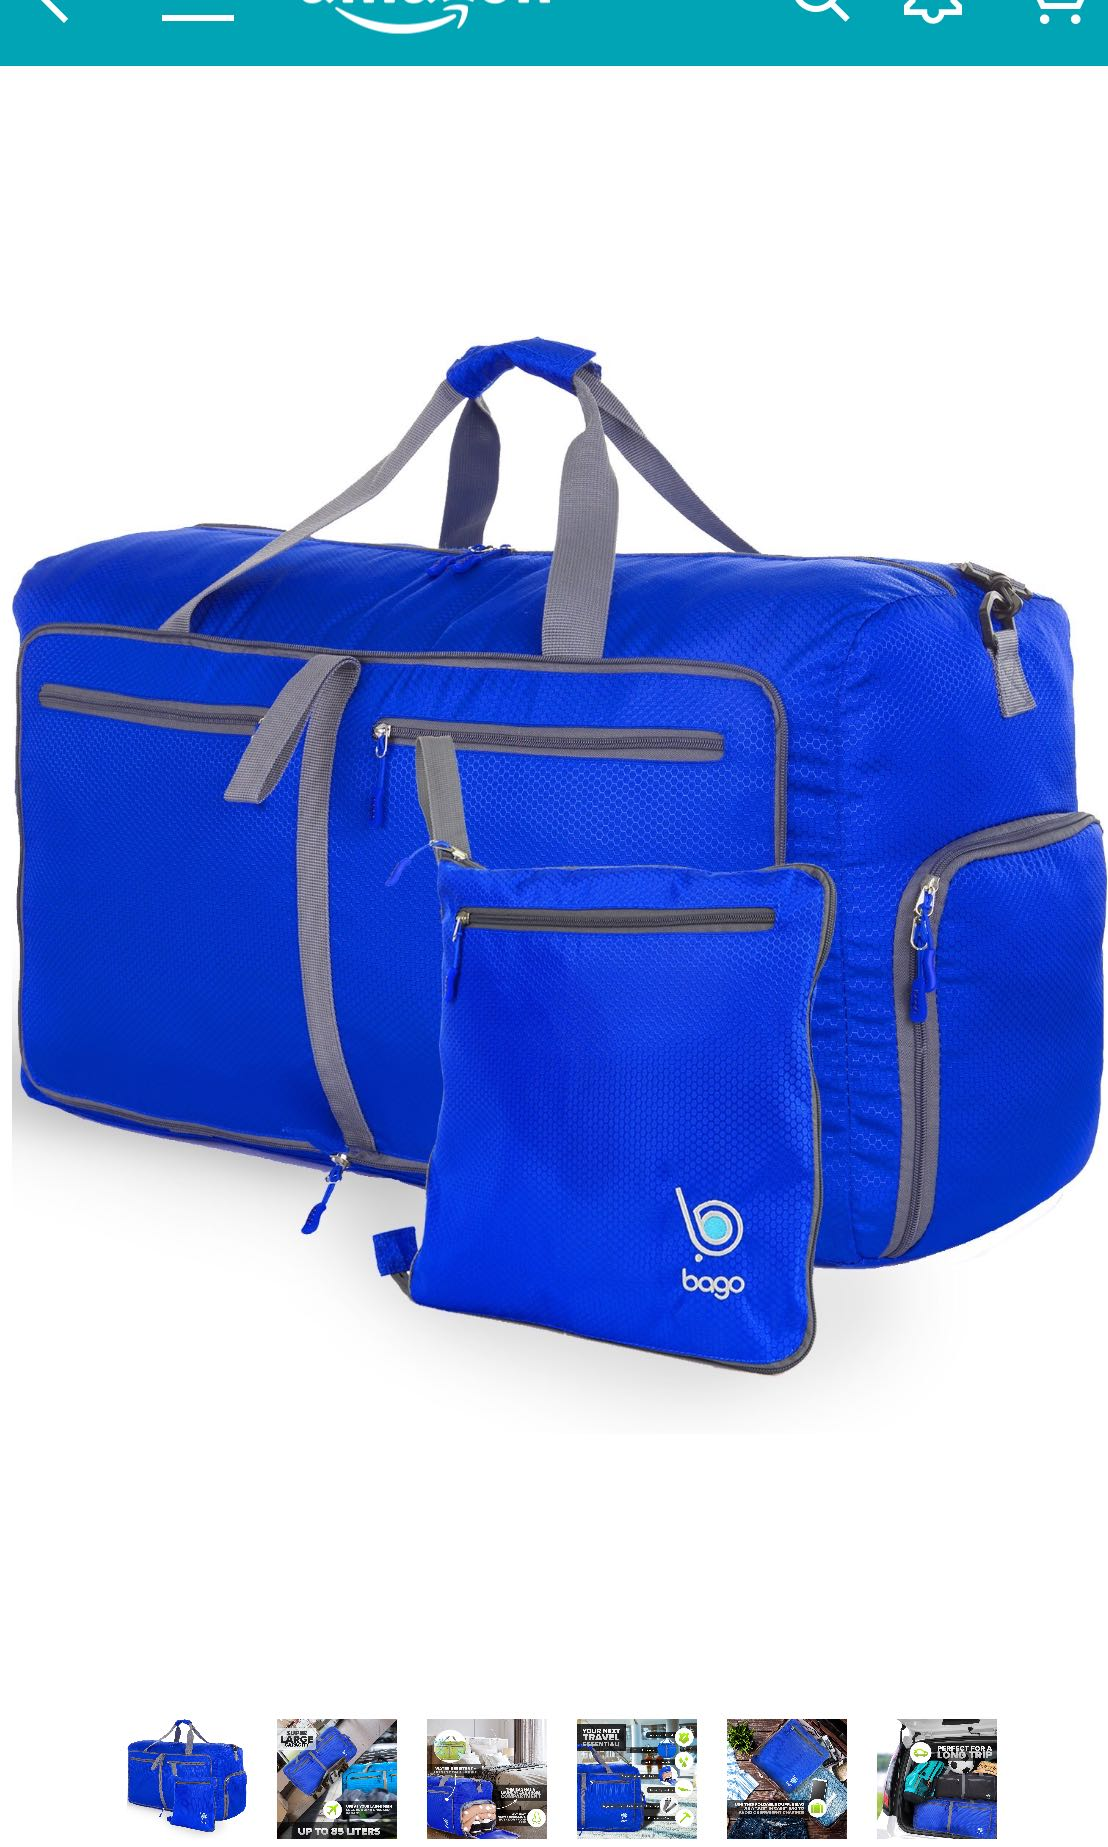 """BAGO travel duffel bag - foldable and expandable 27"""", Travel, Travel  Essentials, Luggage on Carousell 5717dadde8"""